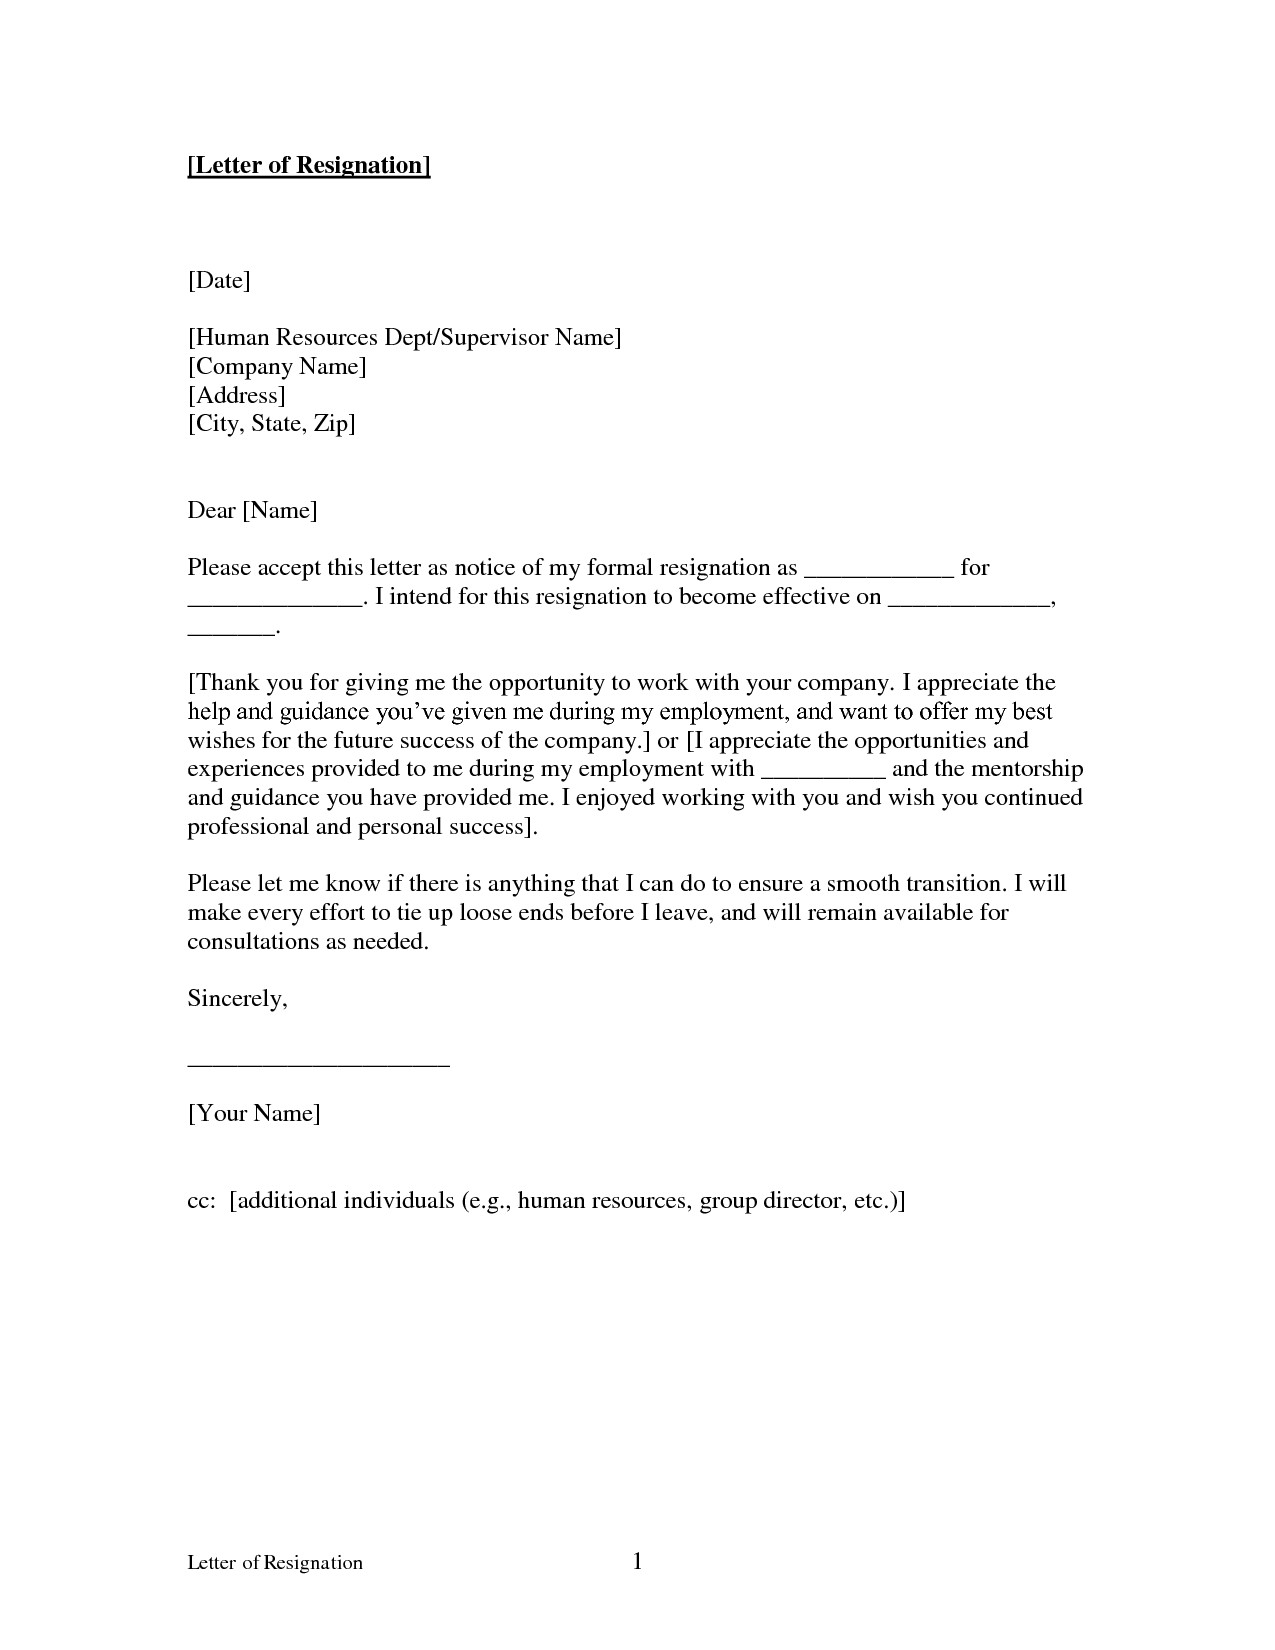 Letters Of Resignation Template Free Printable Letter Of Resignation form Generic